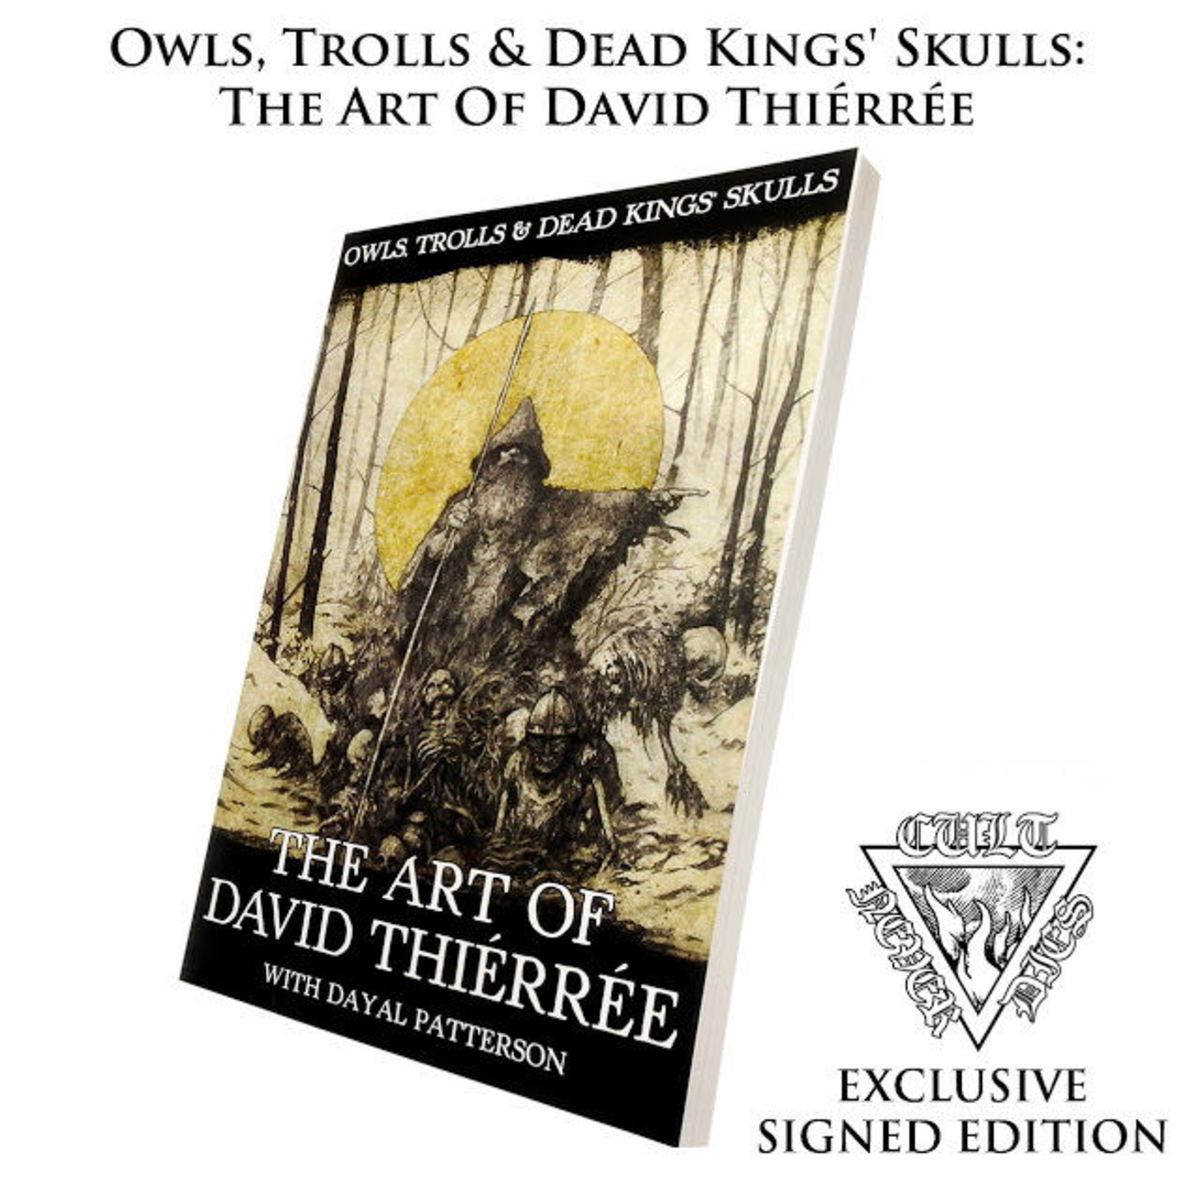 kniha Owls, Trolls, Dead King's Skulls: Art Of David Thiérrée (signed) - CULT005